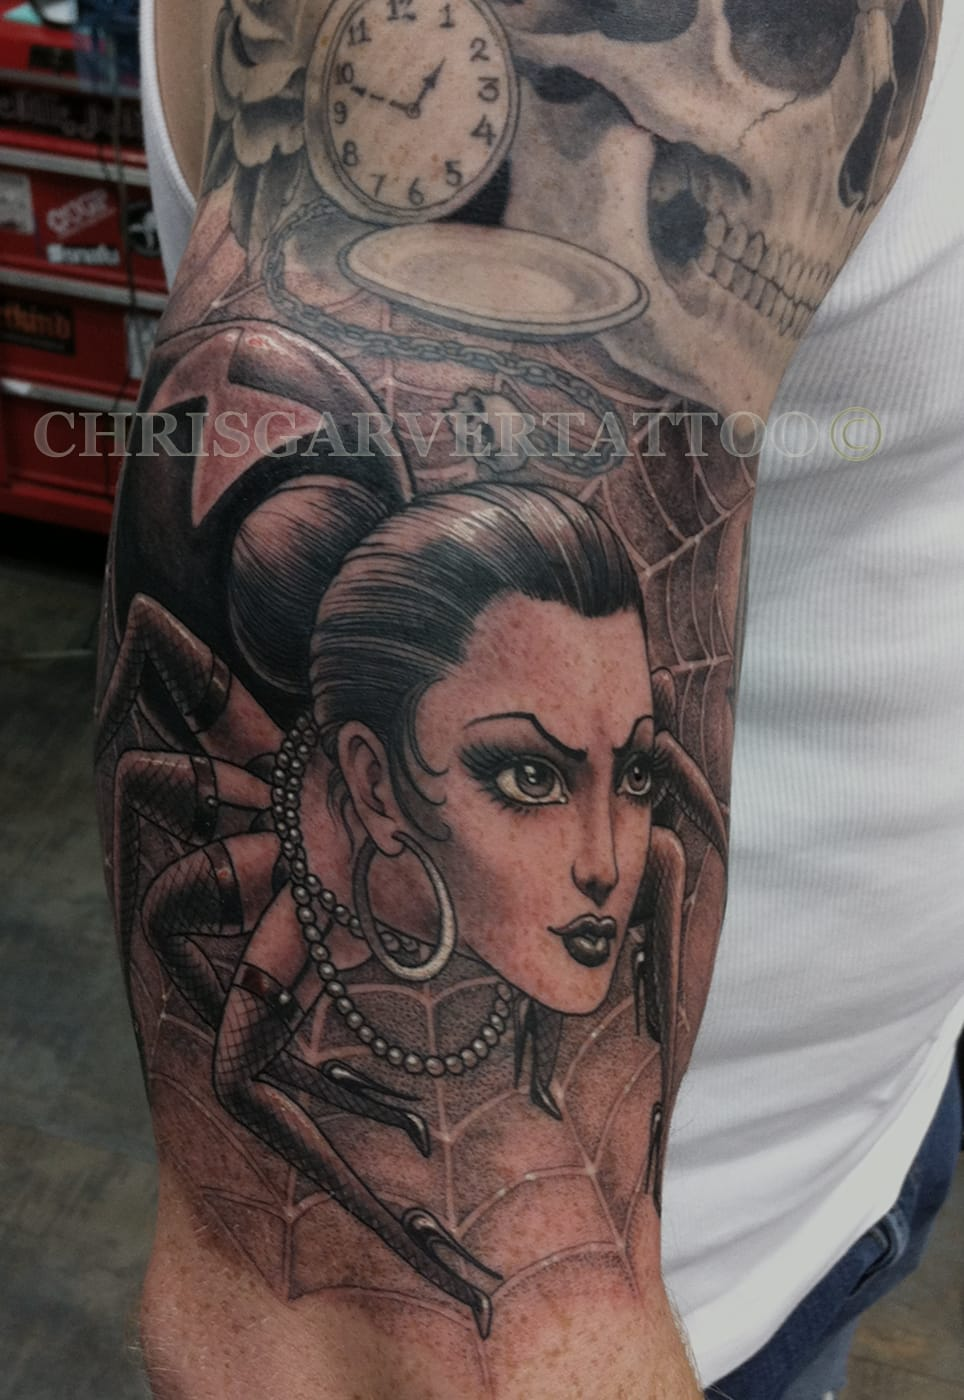 Awesome tattoo as always by Chris Garver.